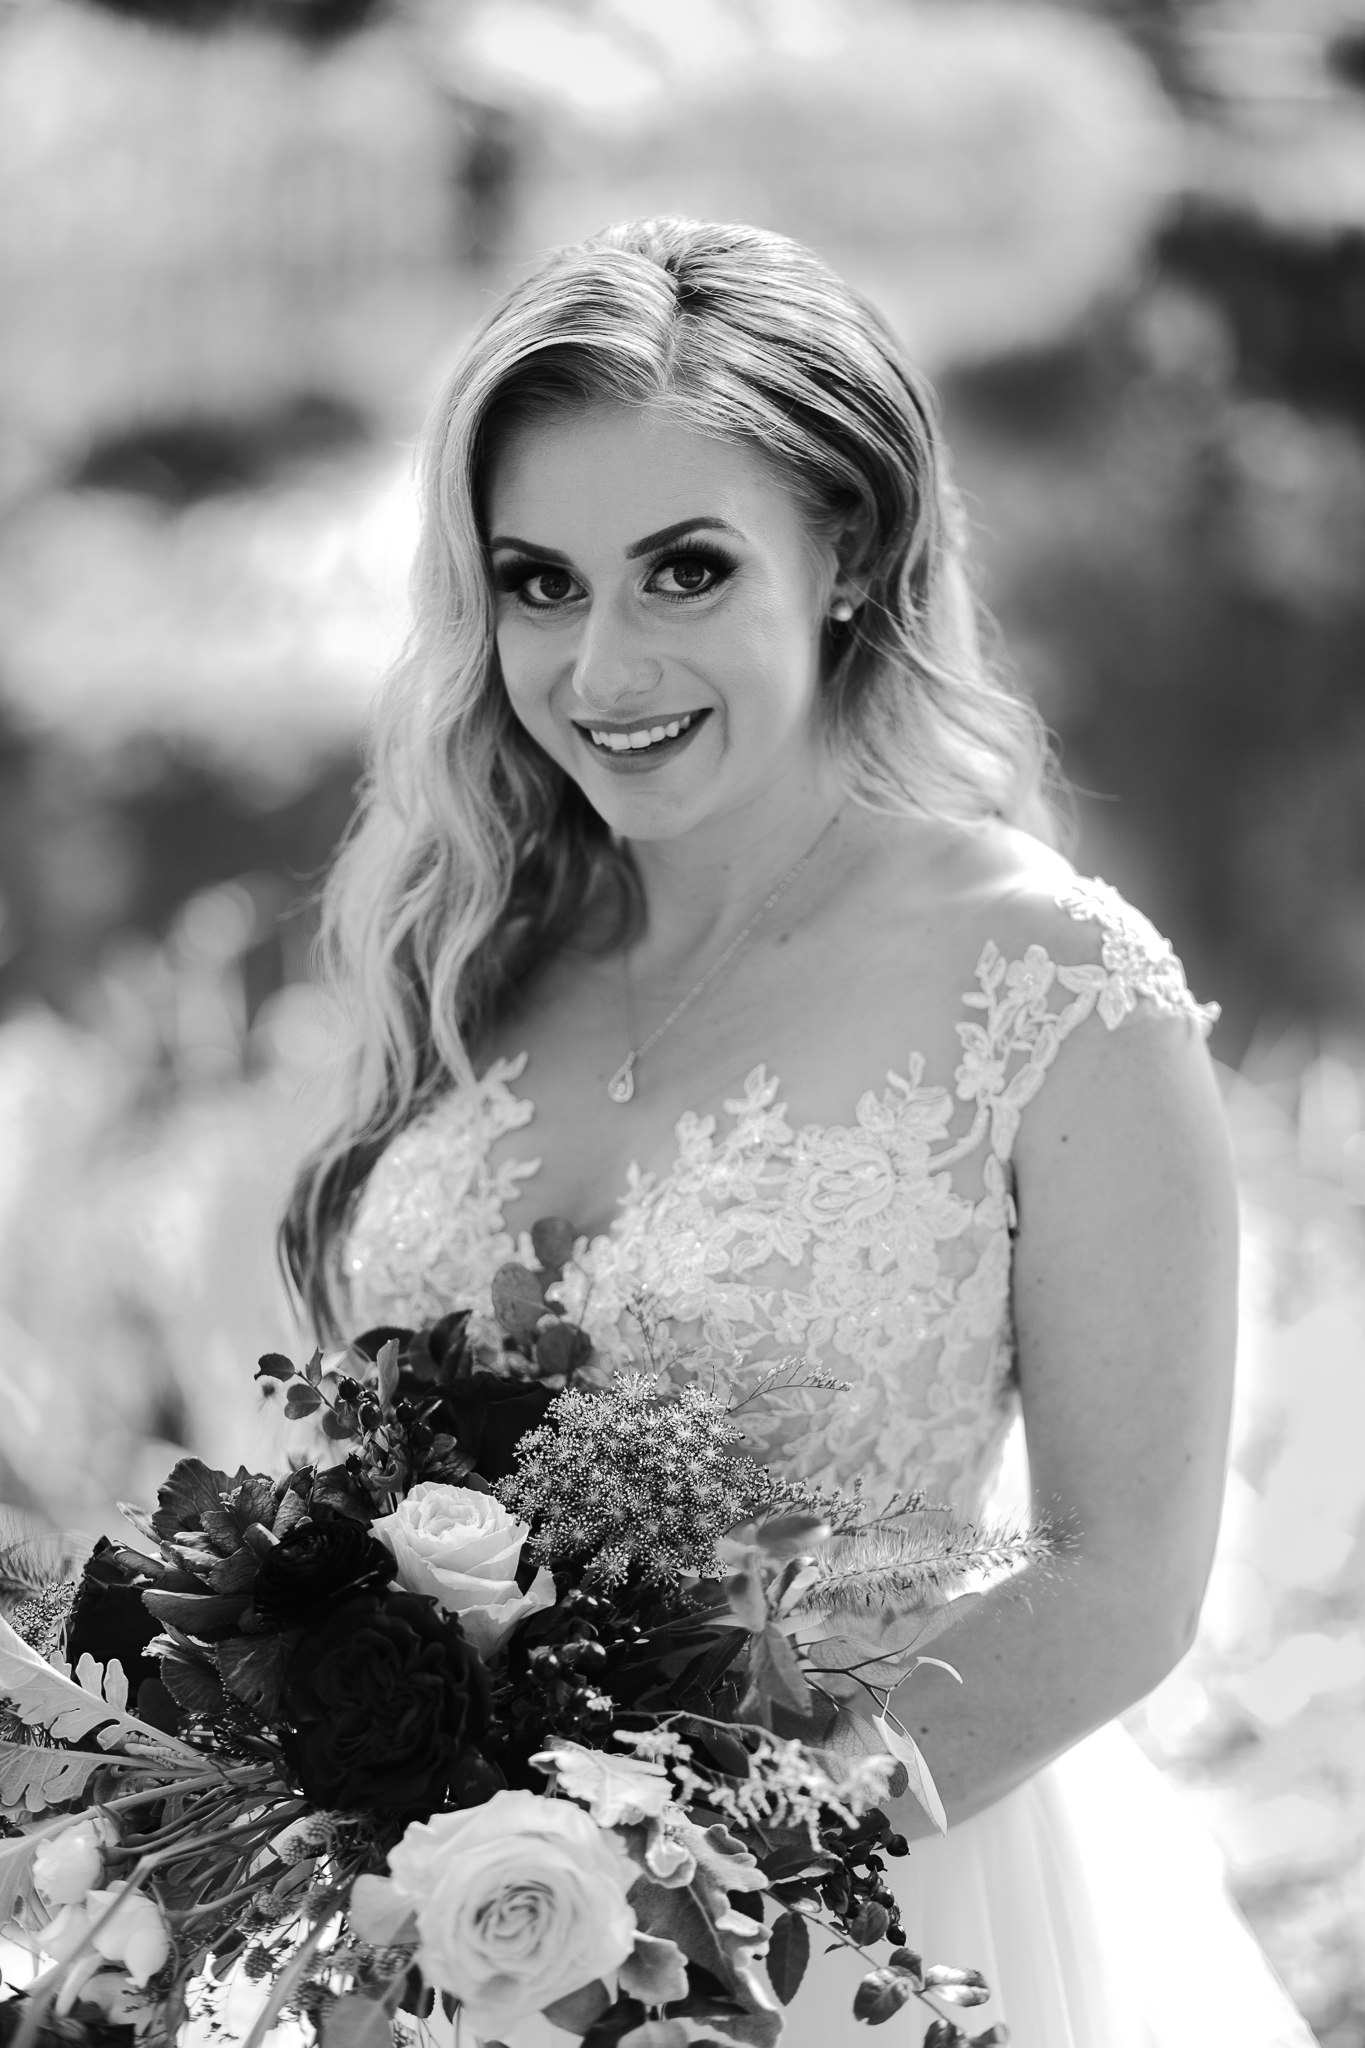 Alayna & Eric - wedding -  Bridal Veil Lakes, OR - Malina Rose Photography-45.jpg